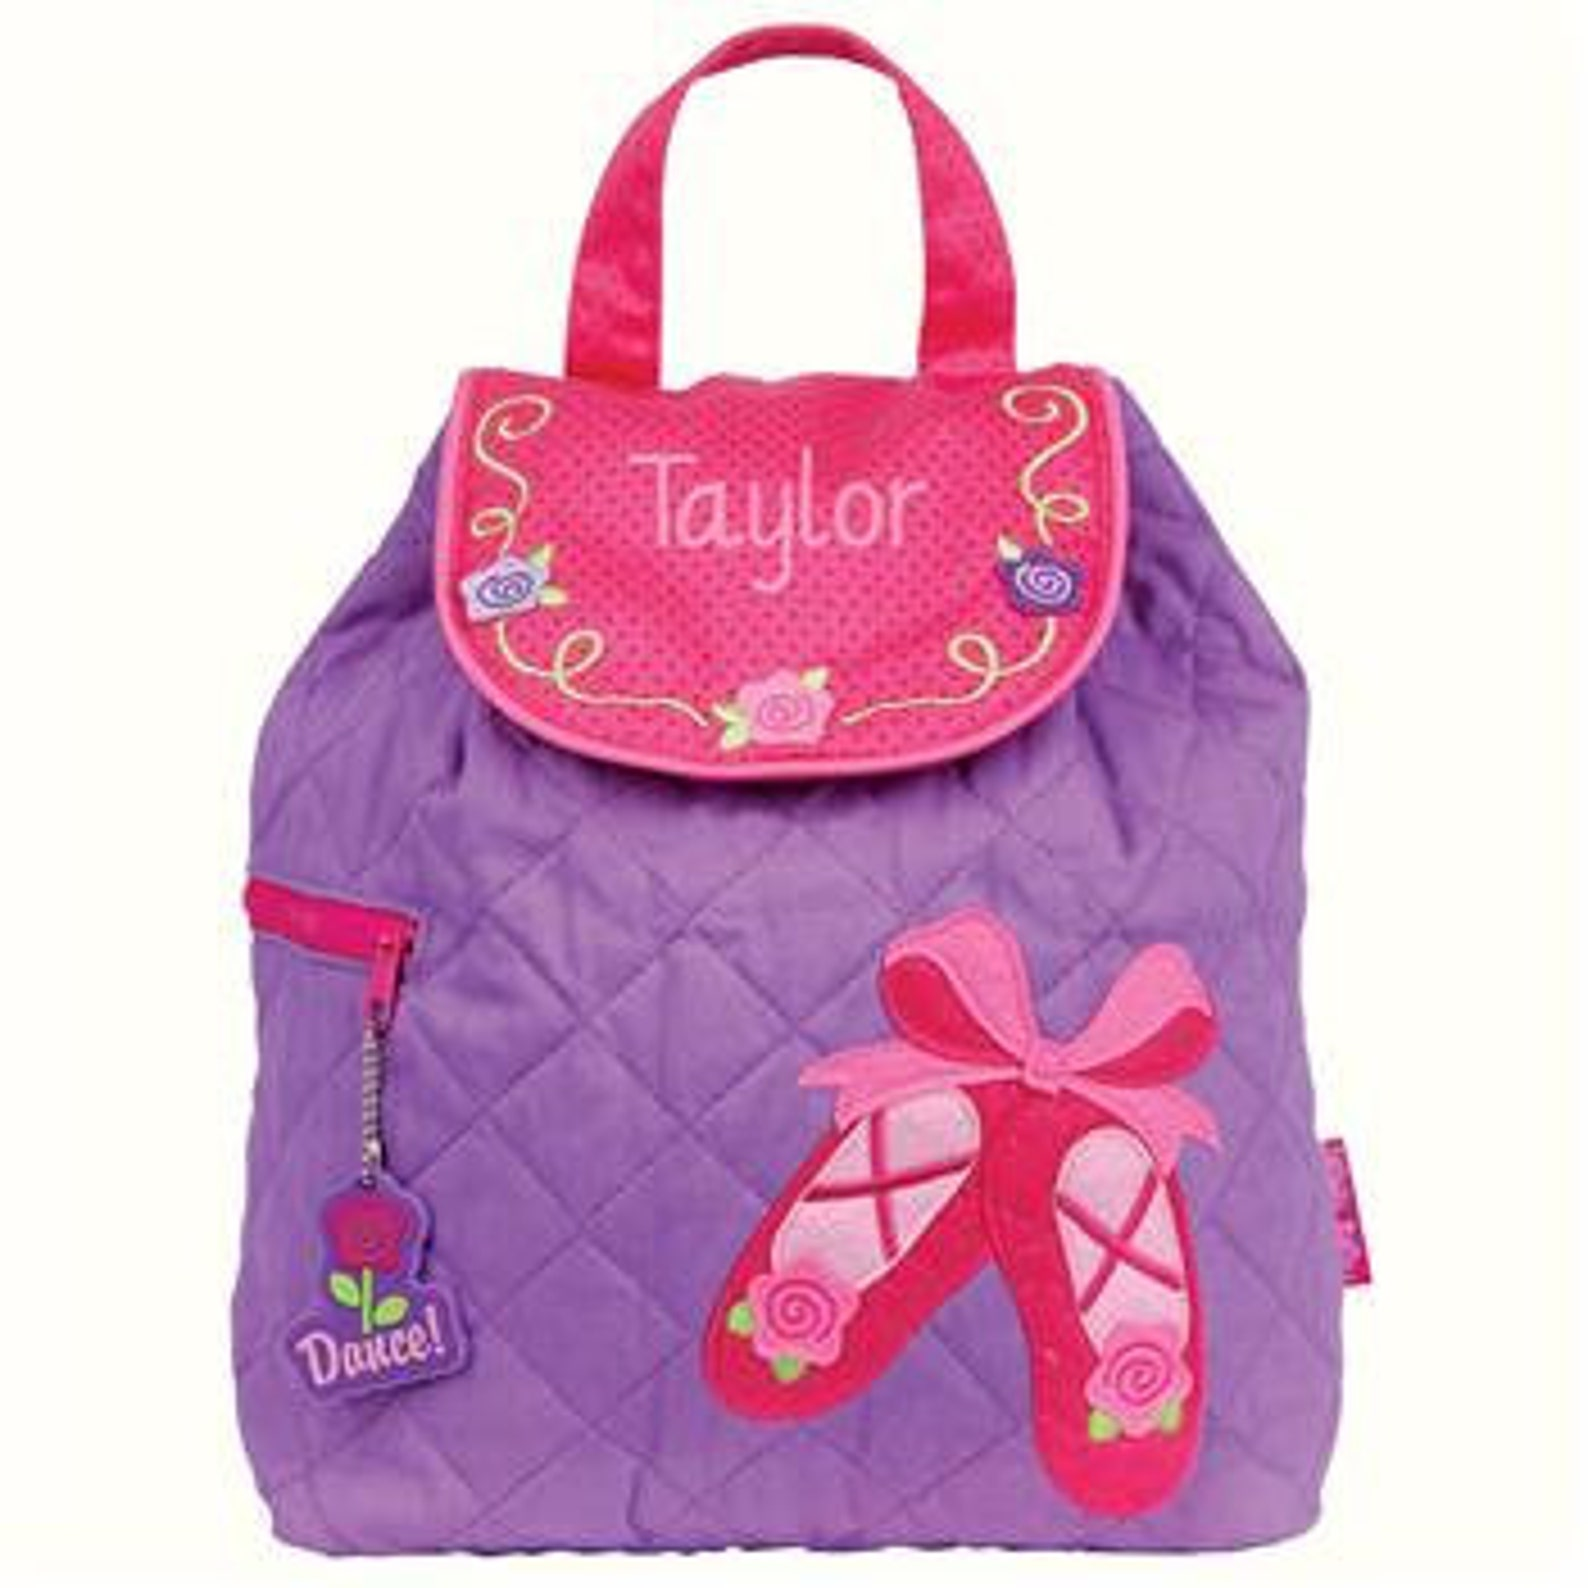 ballet shoes personalized quilted children's backpack, monogram, preschool backpack, toddler backpack, diaper bag